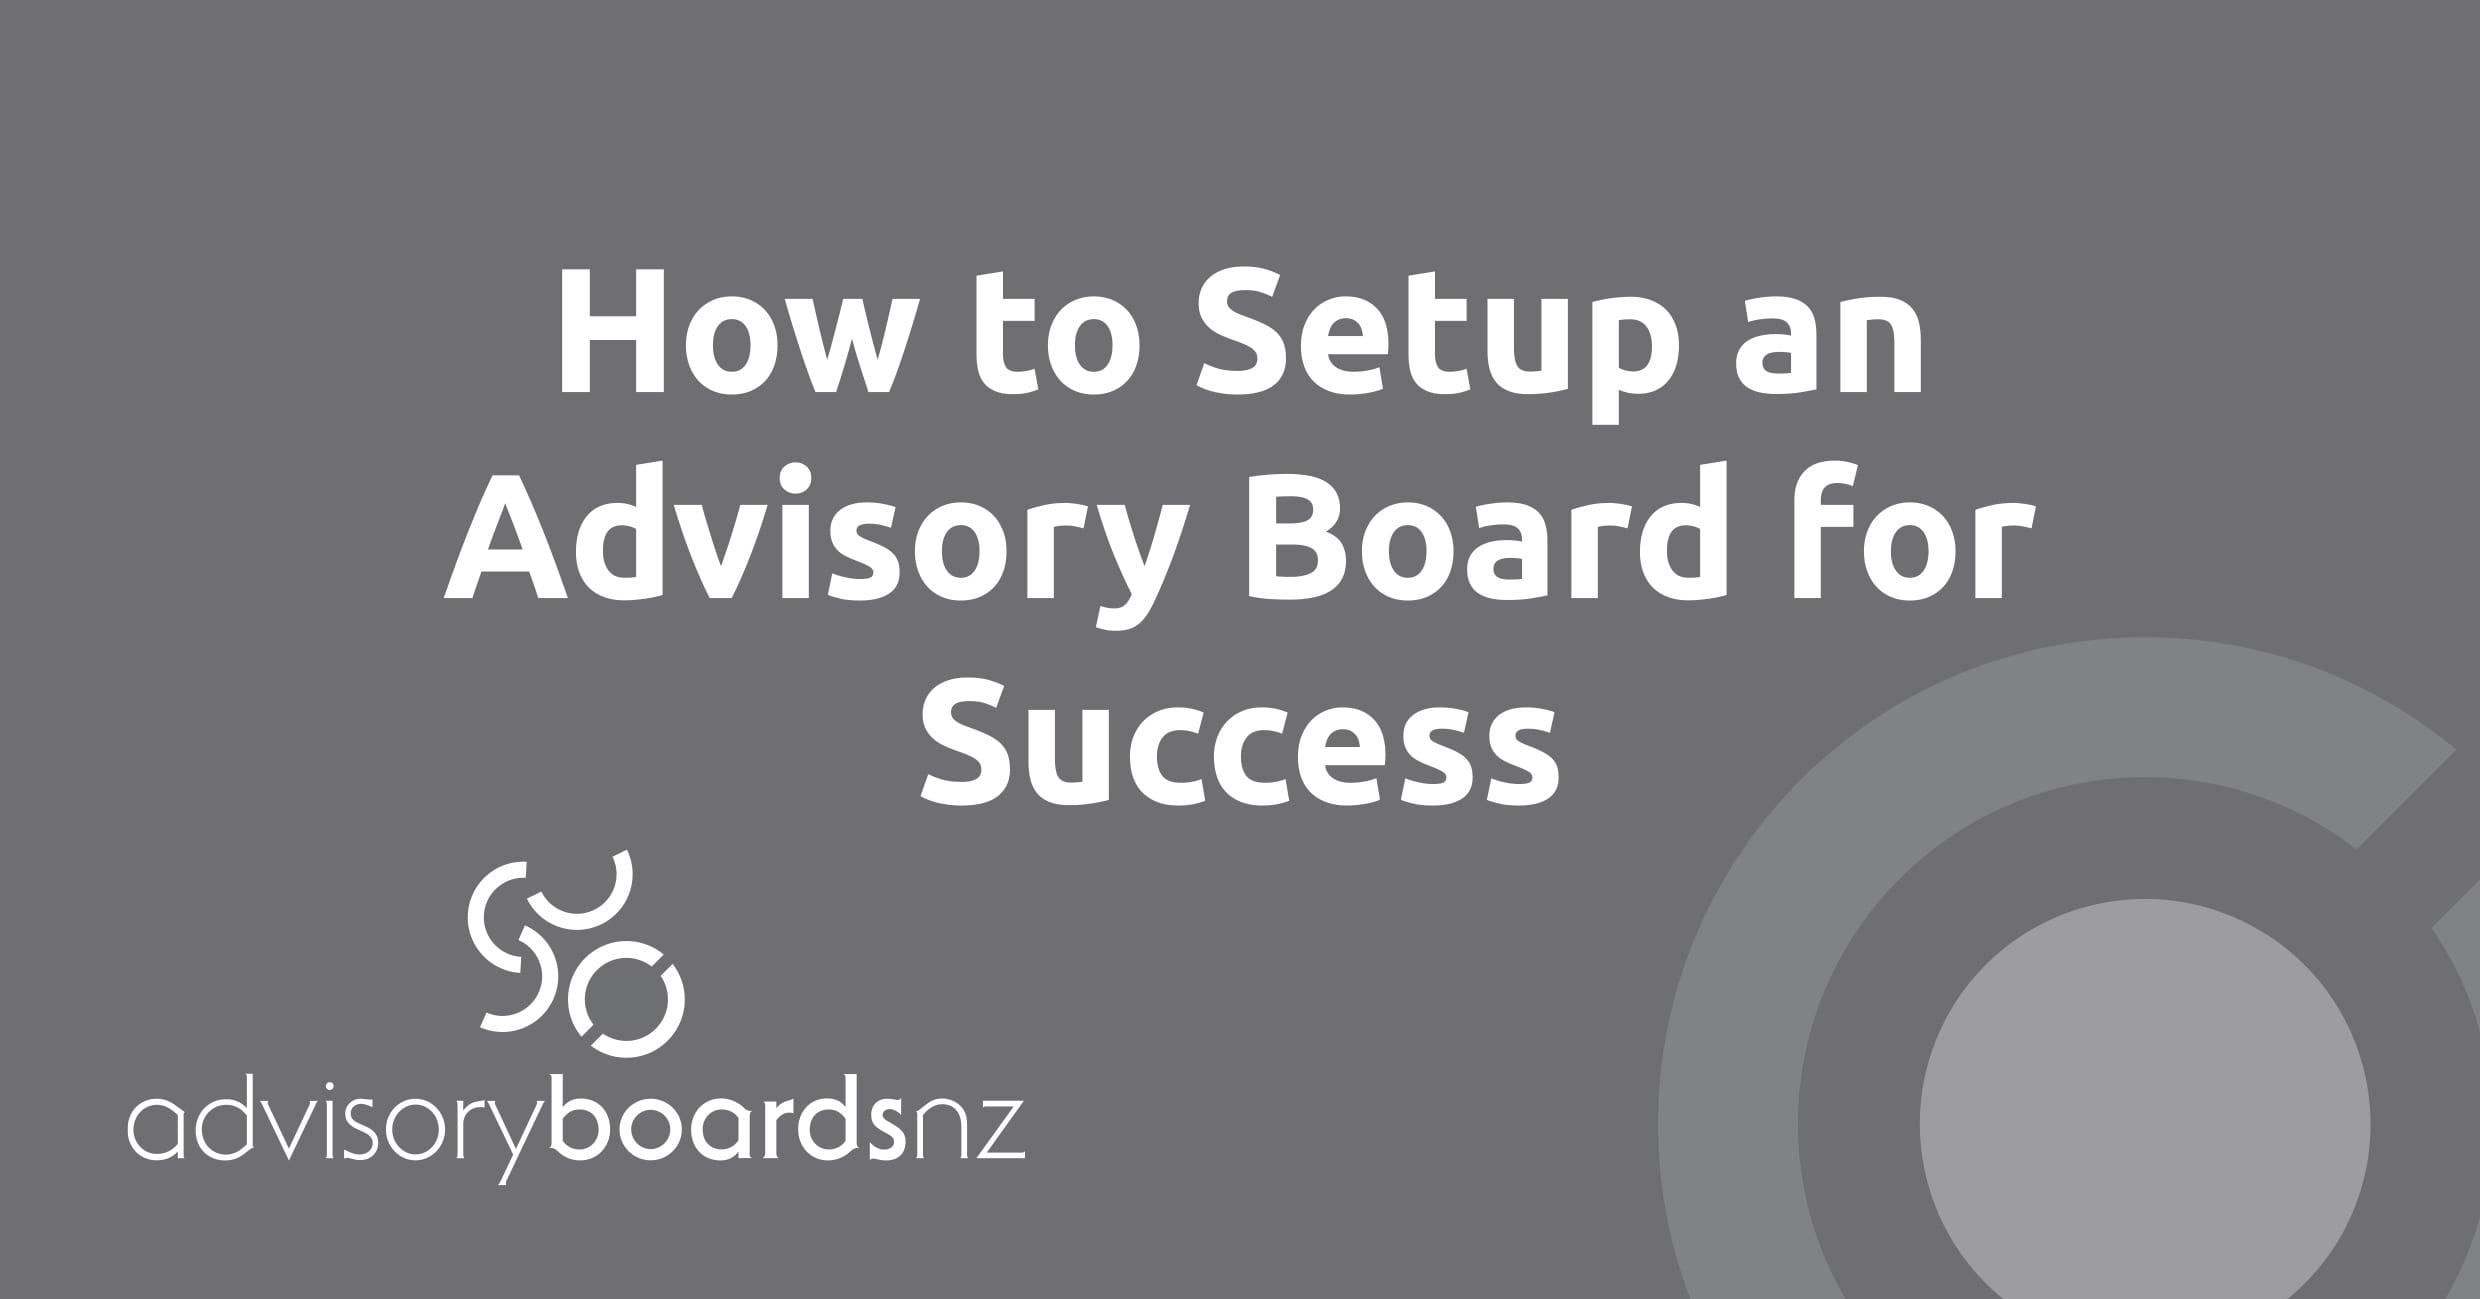 How to Setup an Advisory Board for Success - Webinar